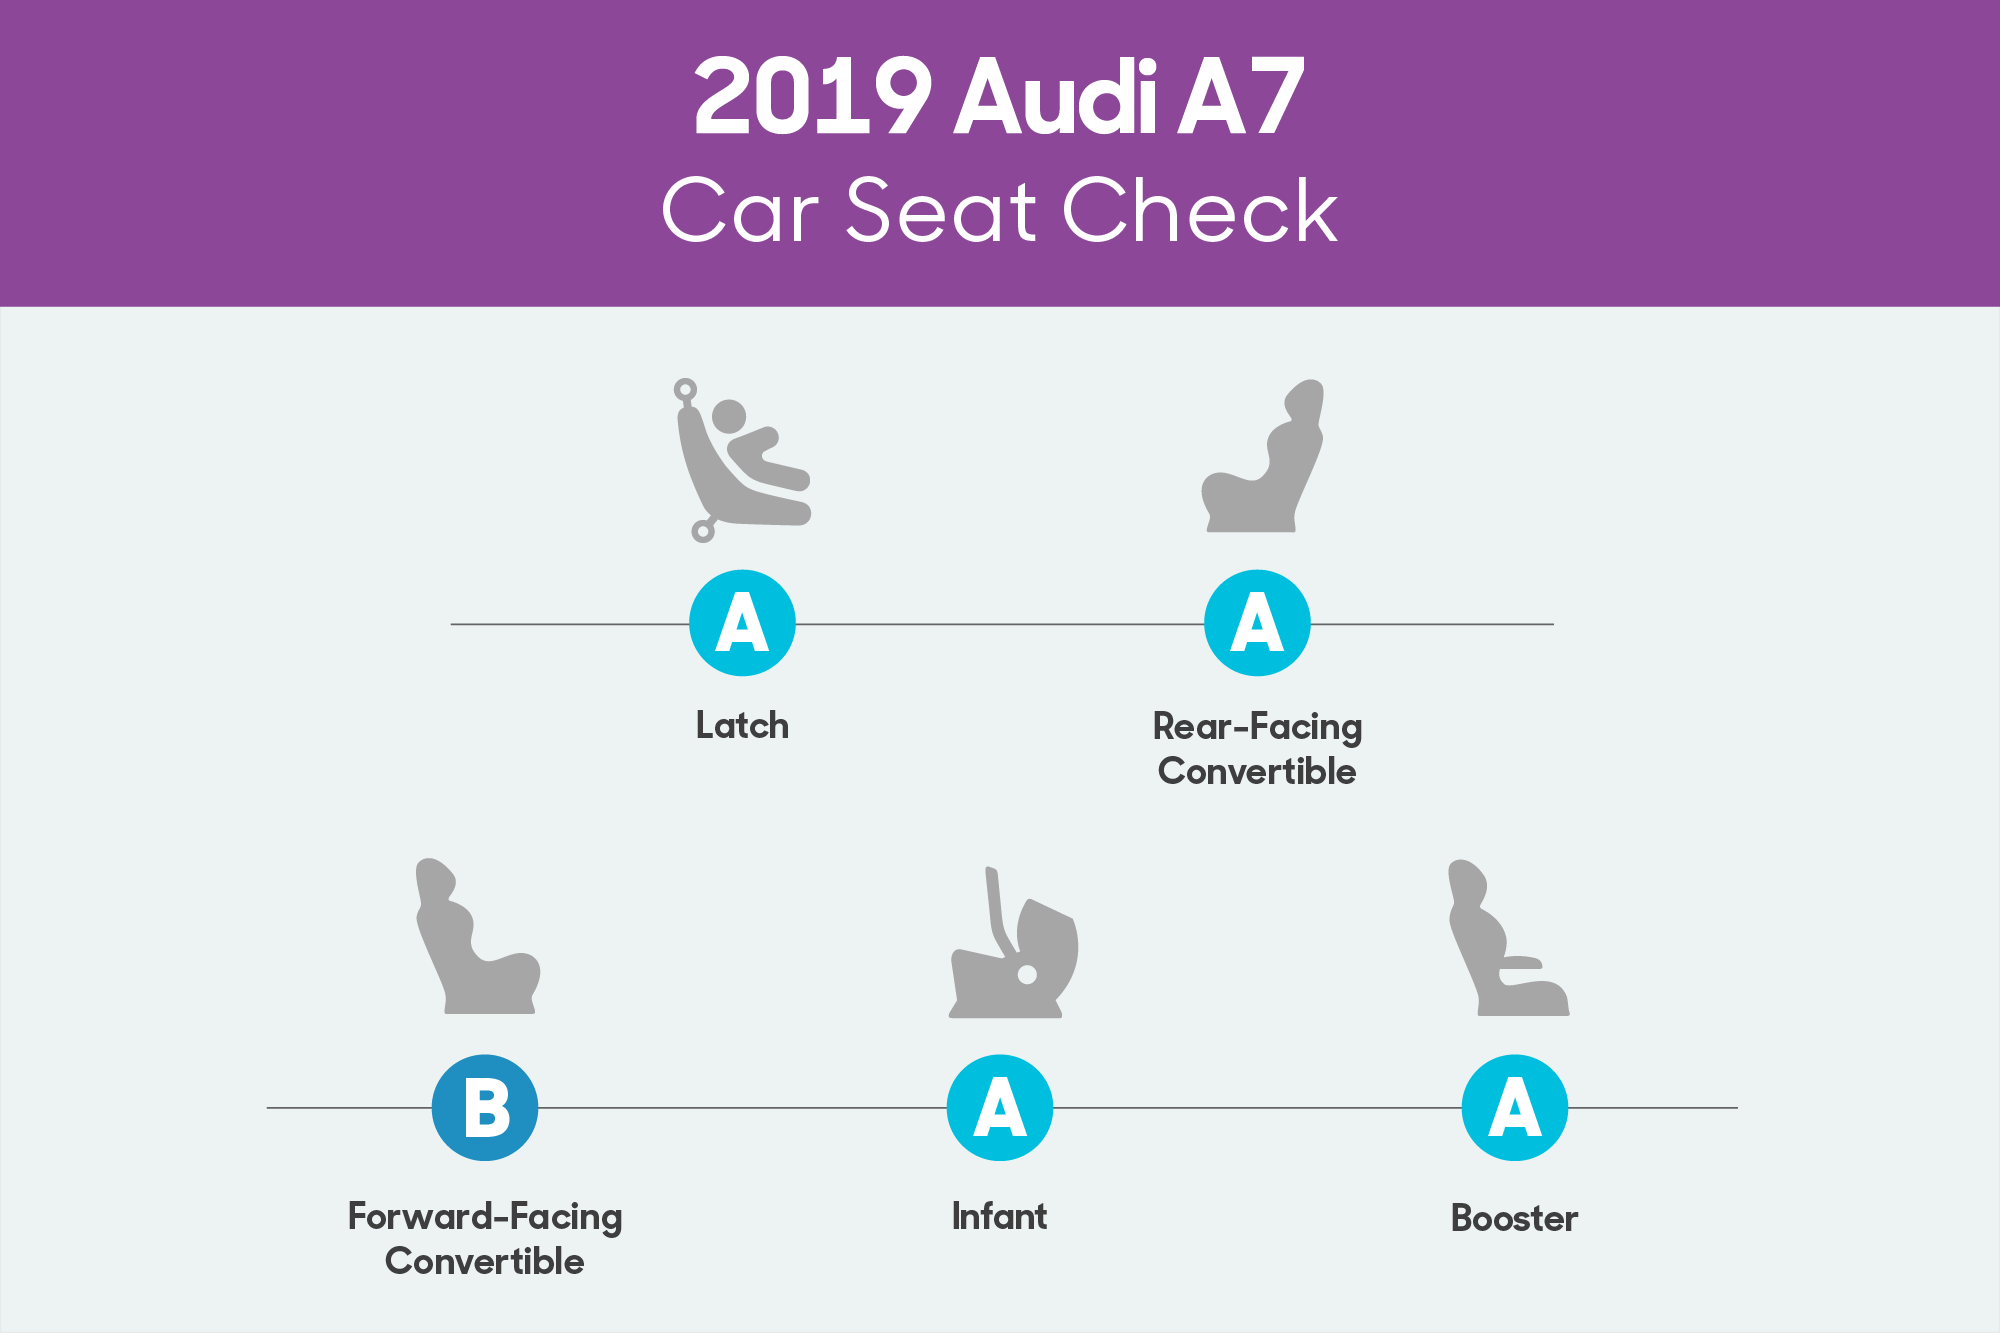 How Do Car Seats Fit in a 2019 Audi A7?